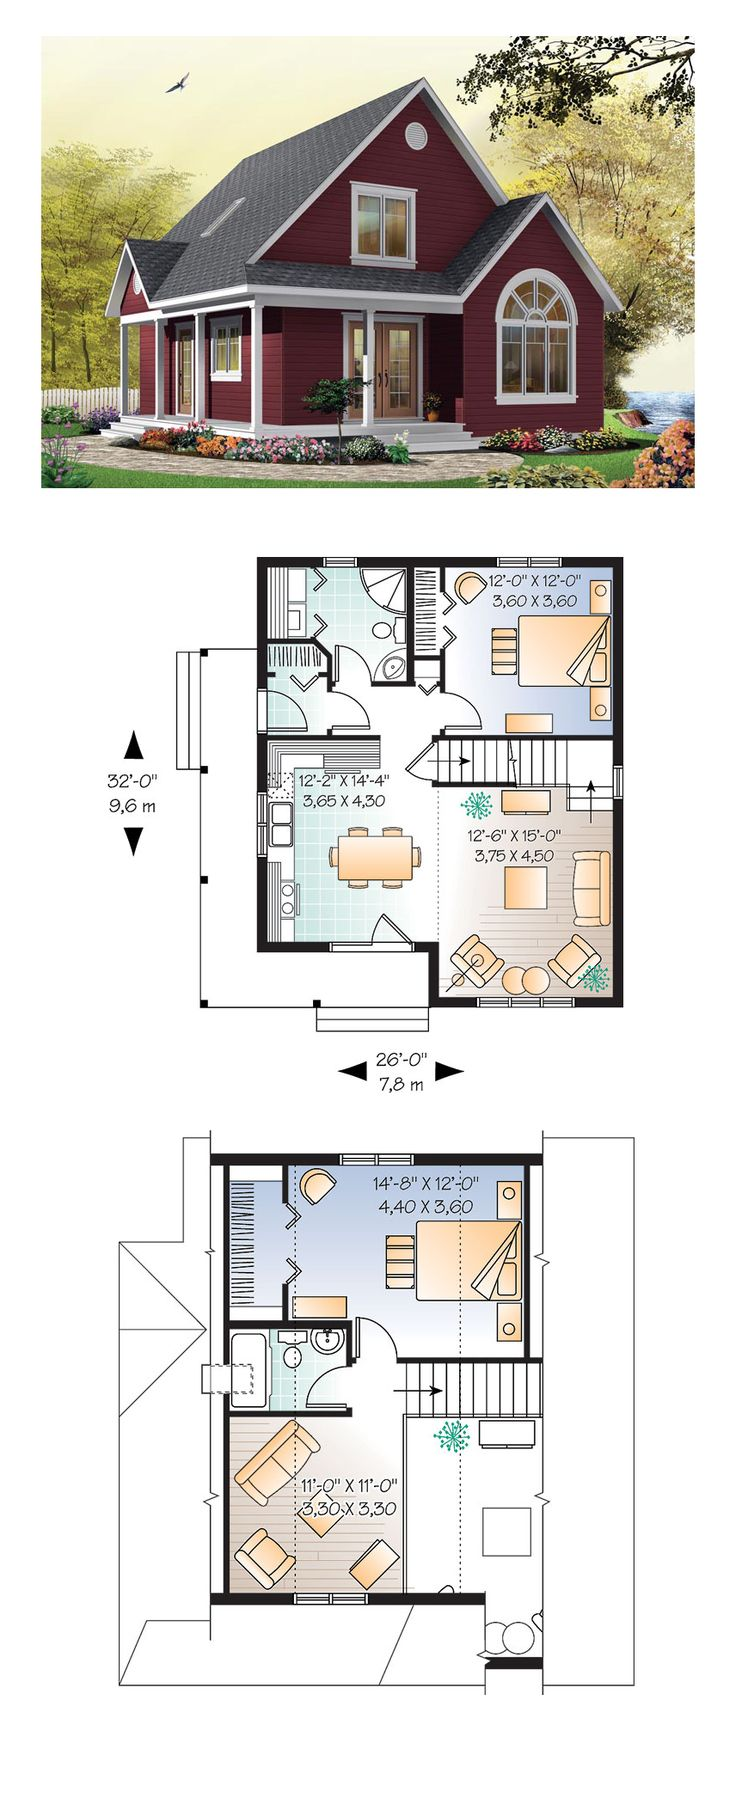 Best 25 small homes ideas on pinterest small home plans tiny cottage floor plans and dog - Calculating square footage of a house pict ...